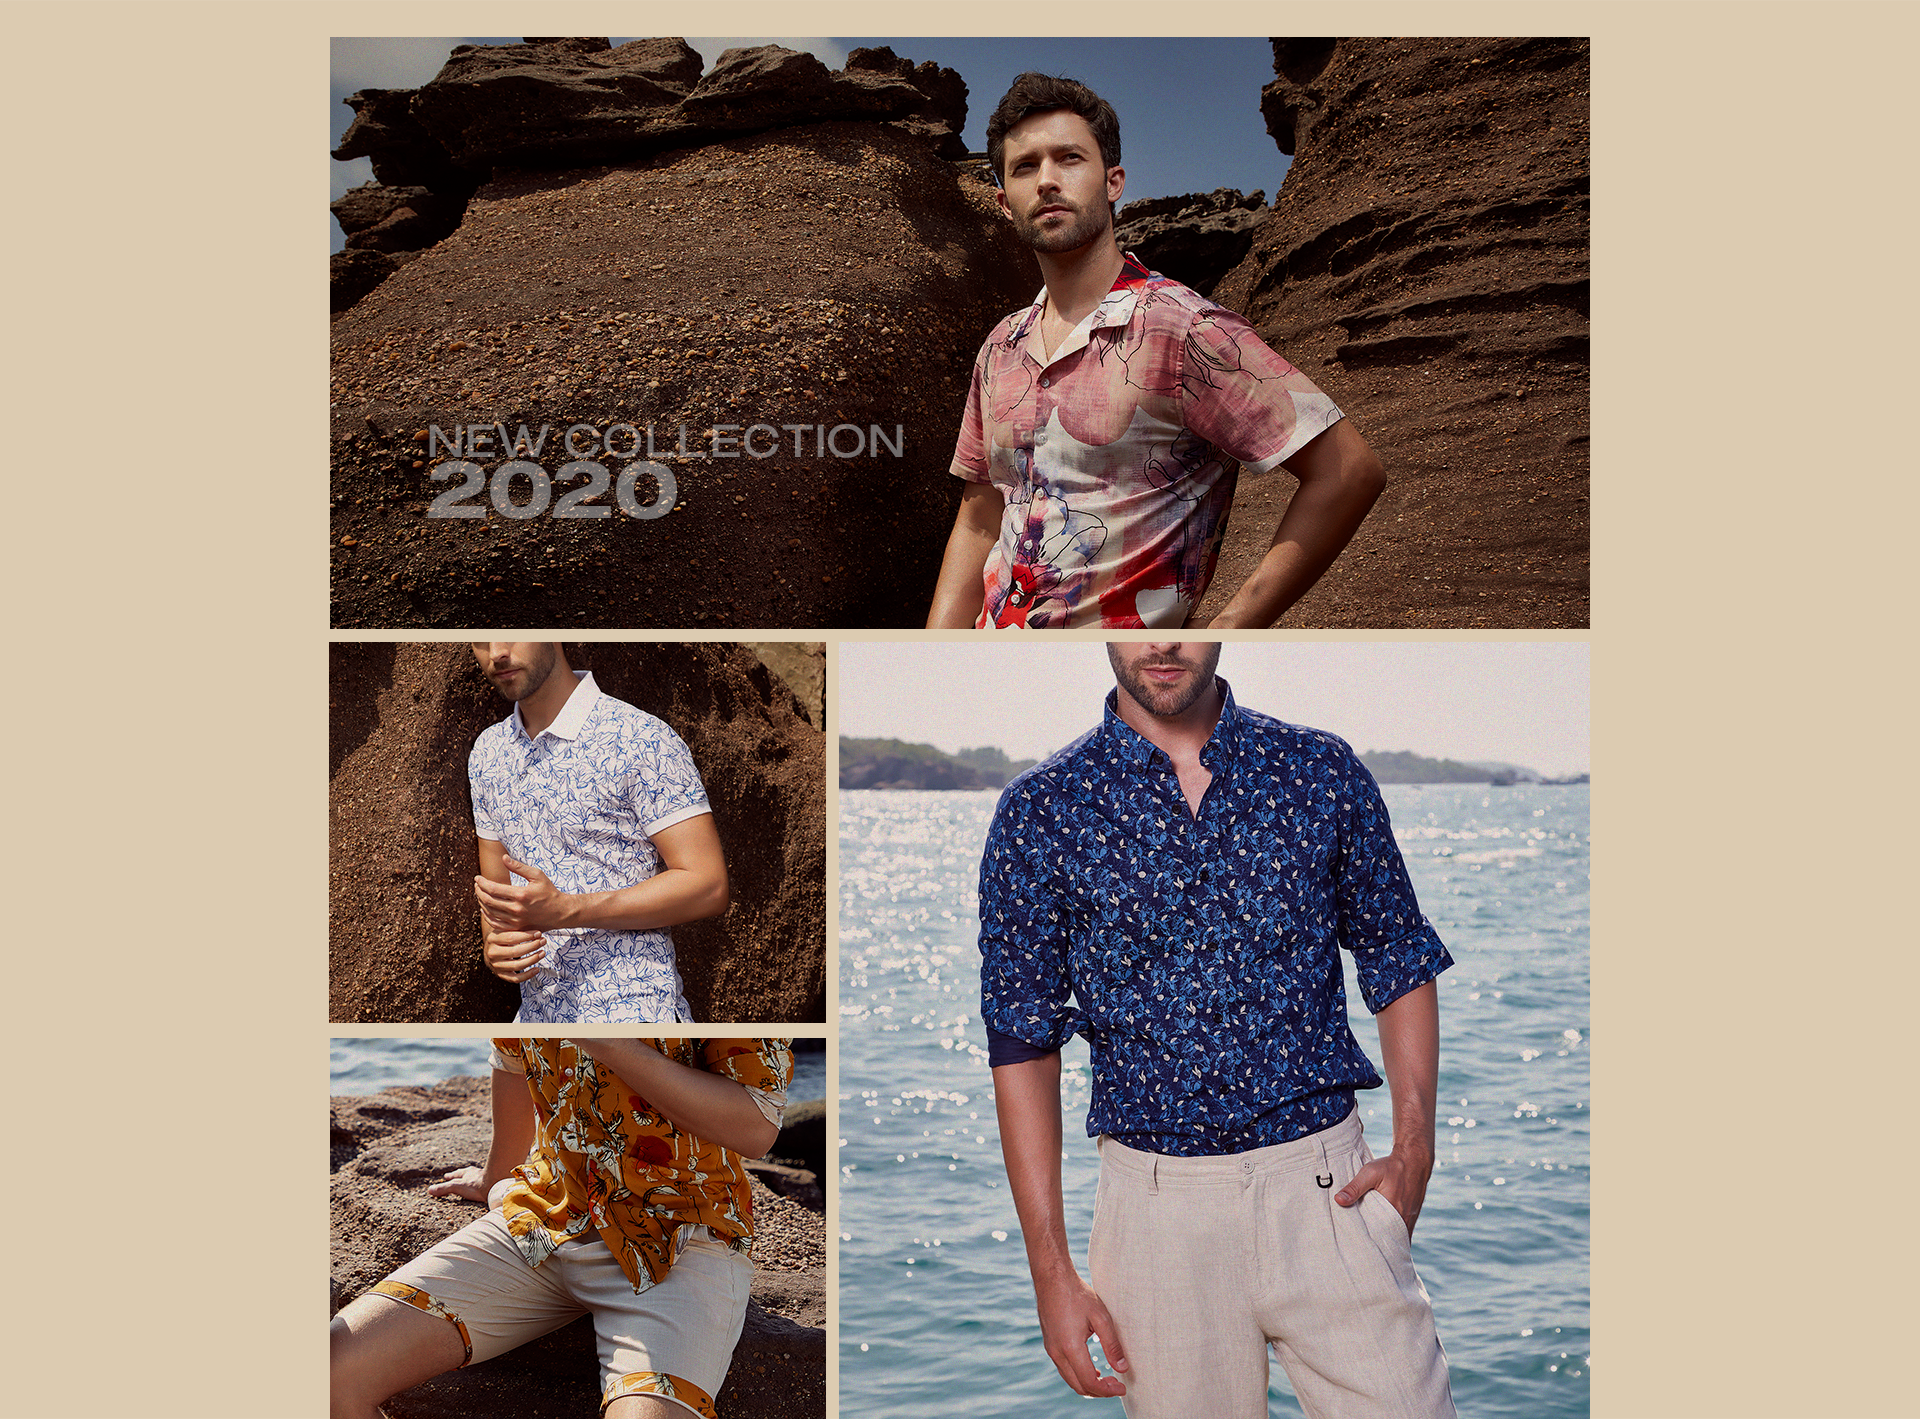 new collection 2020